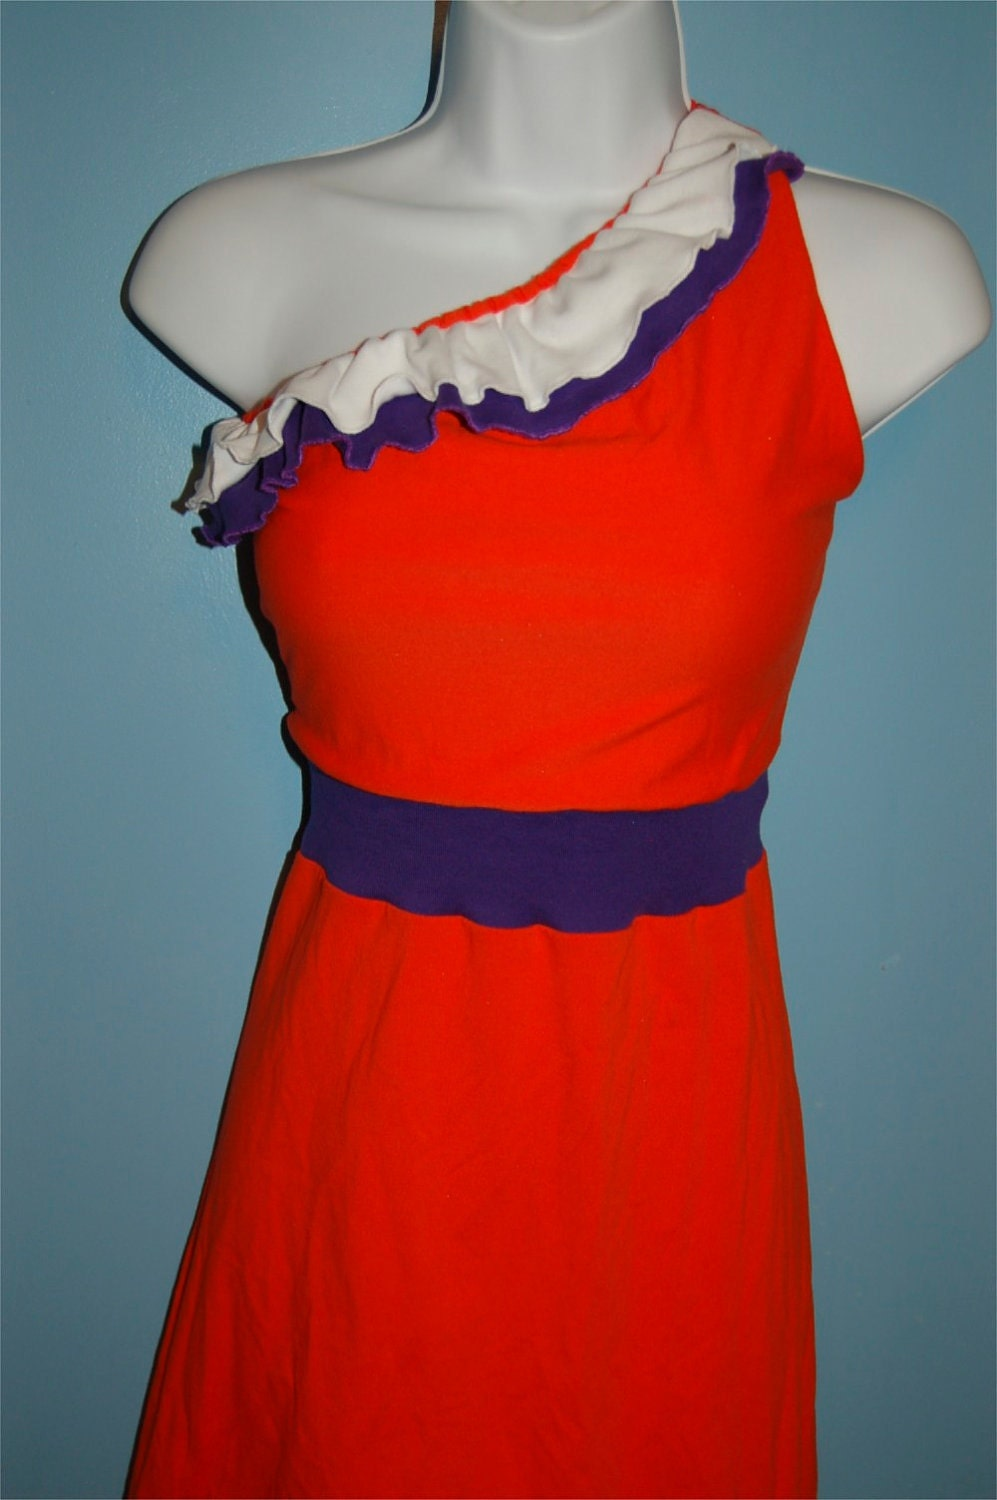 One Shoulder Orange and Purple Dress with Ruffles at Neck Size XS to L